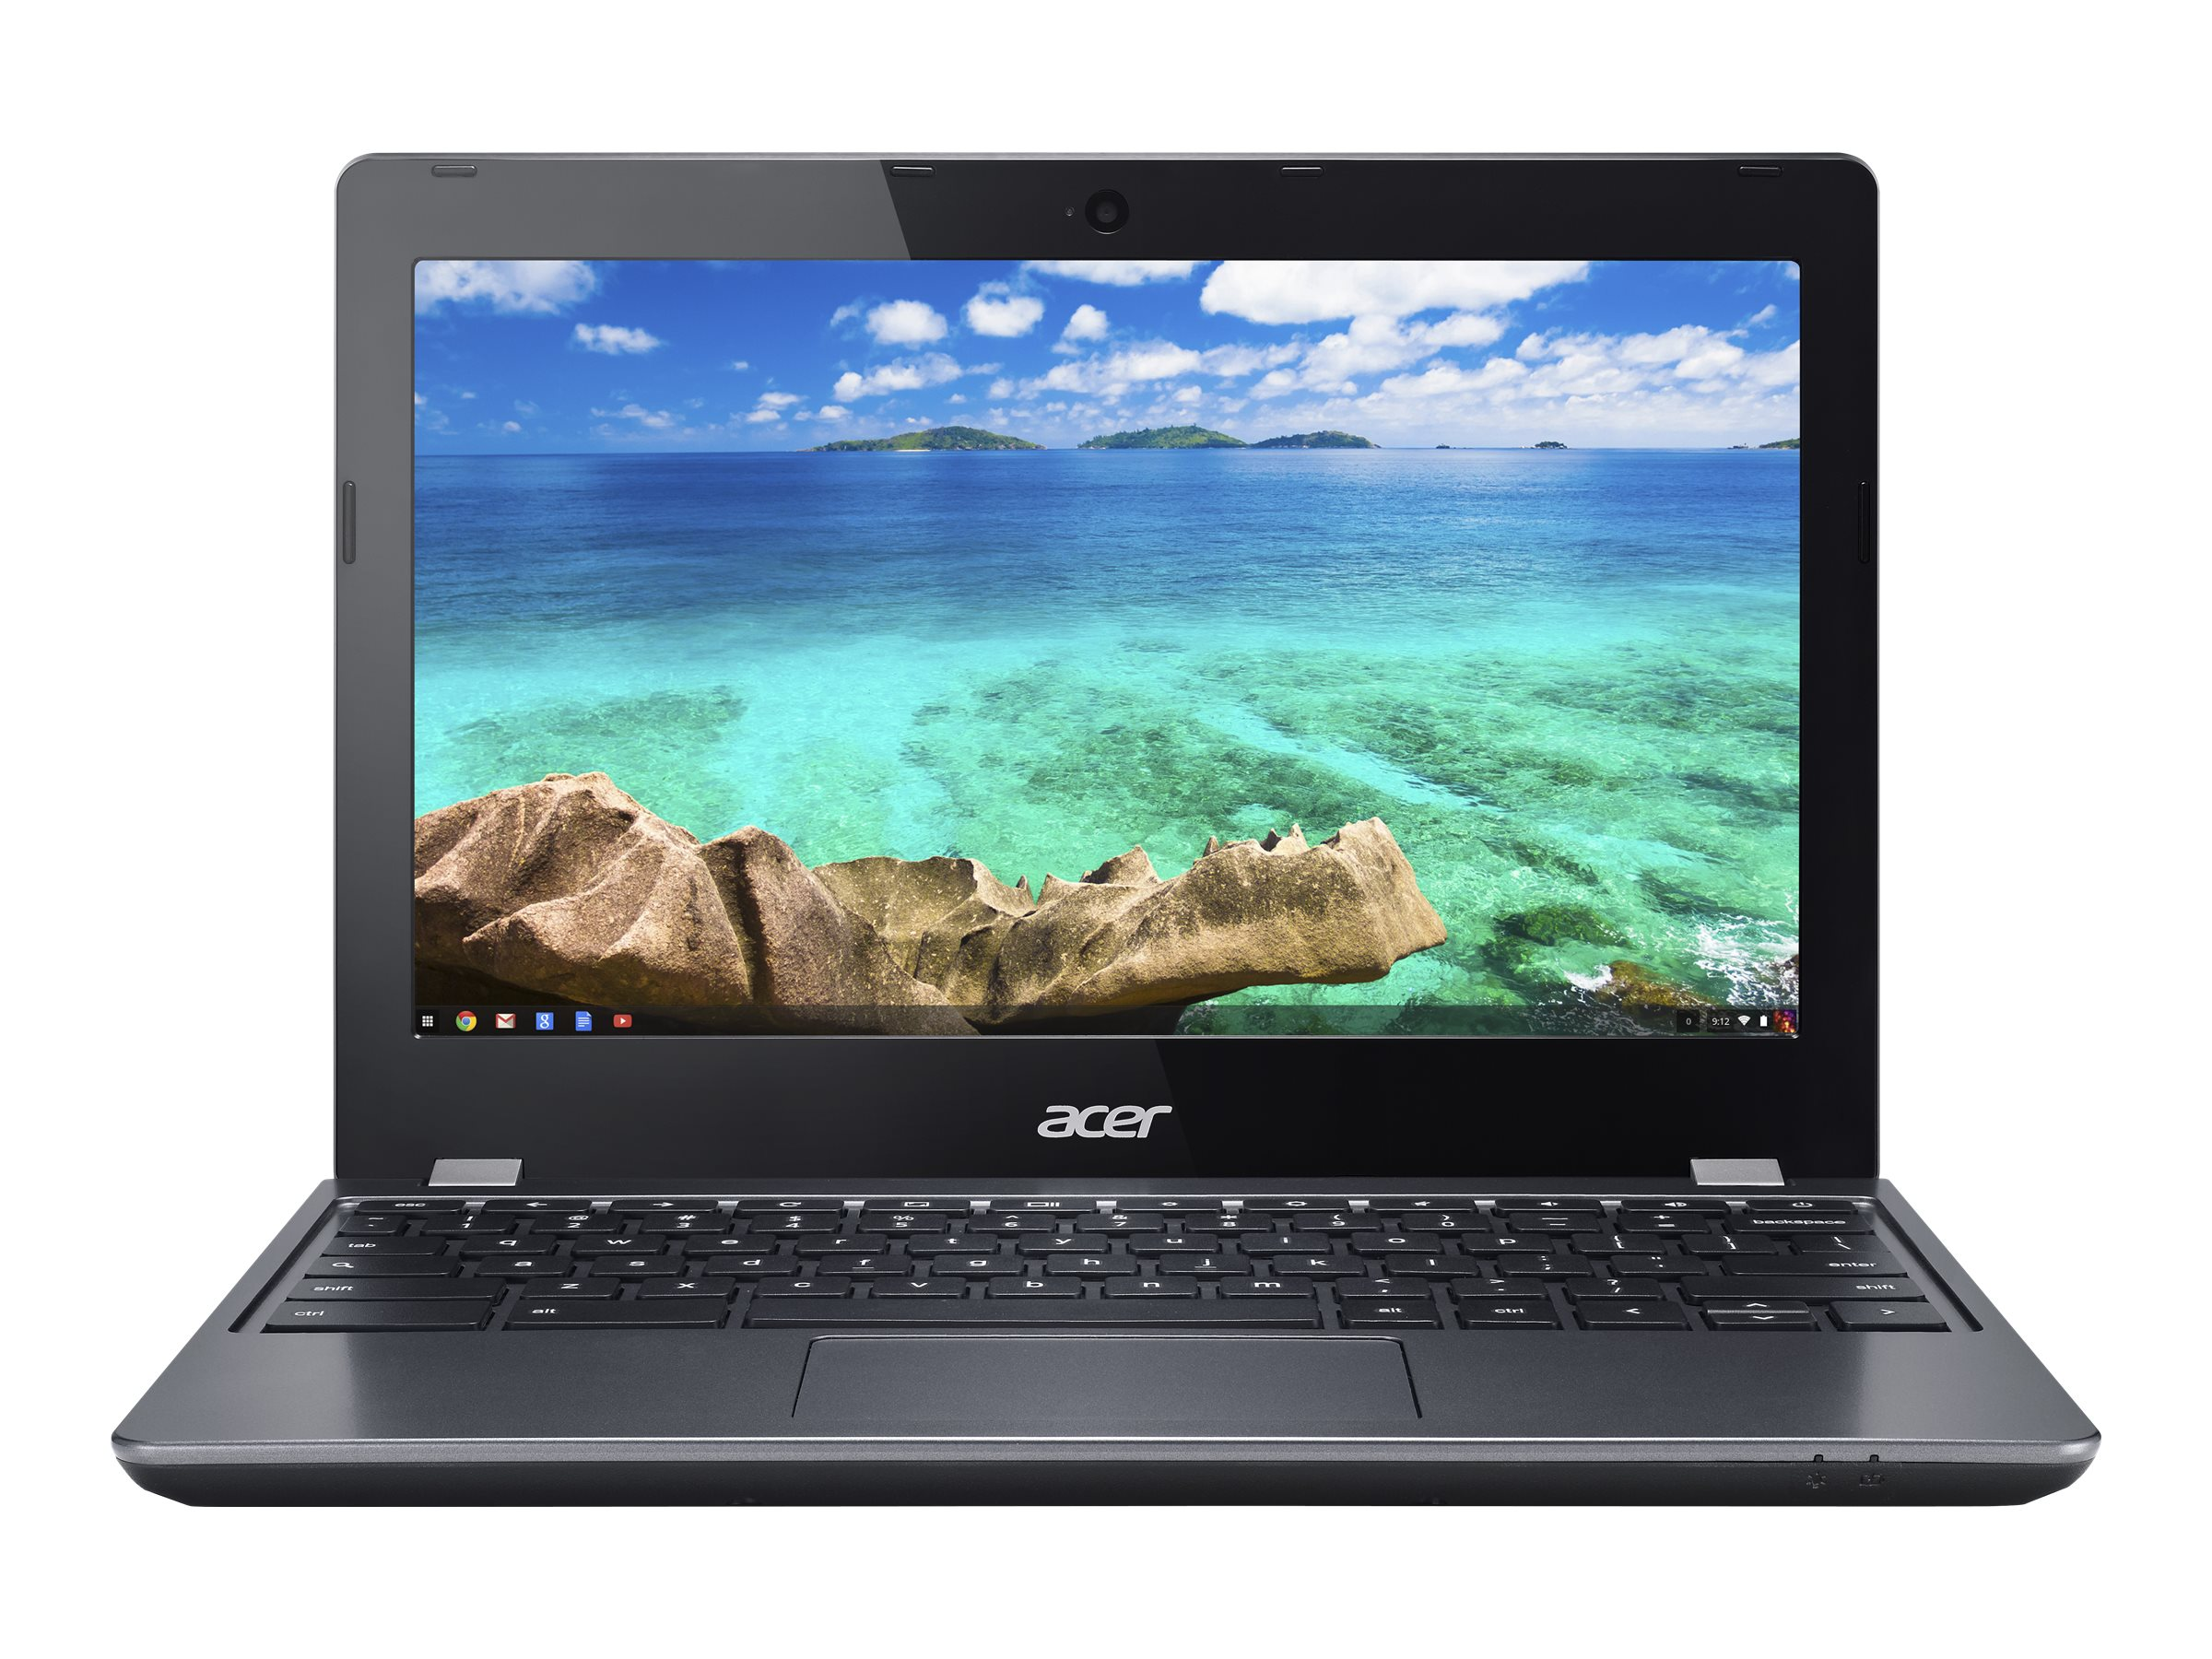 Acer Chromebook C740-C4PE Celeron 3205U 1.5GHz 4GB 16GB SSD ac BT WC 11.6 HD ChromeOS, NX.EF2AA.002